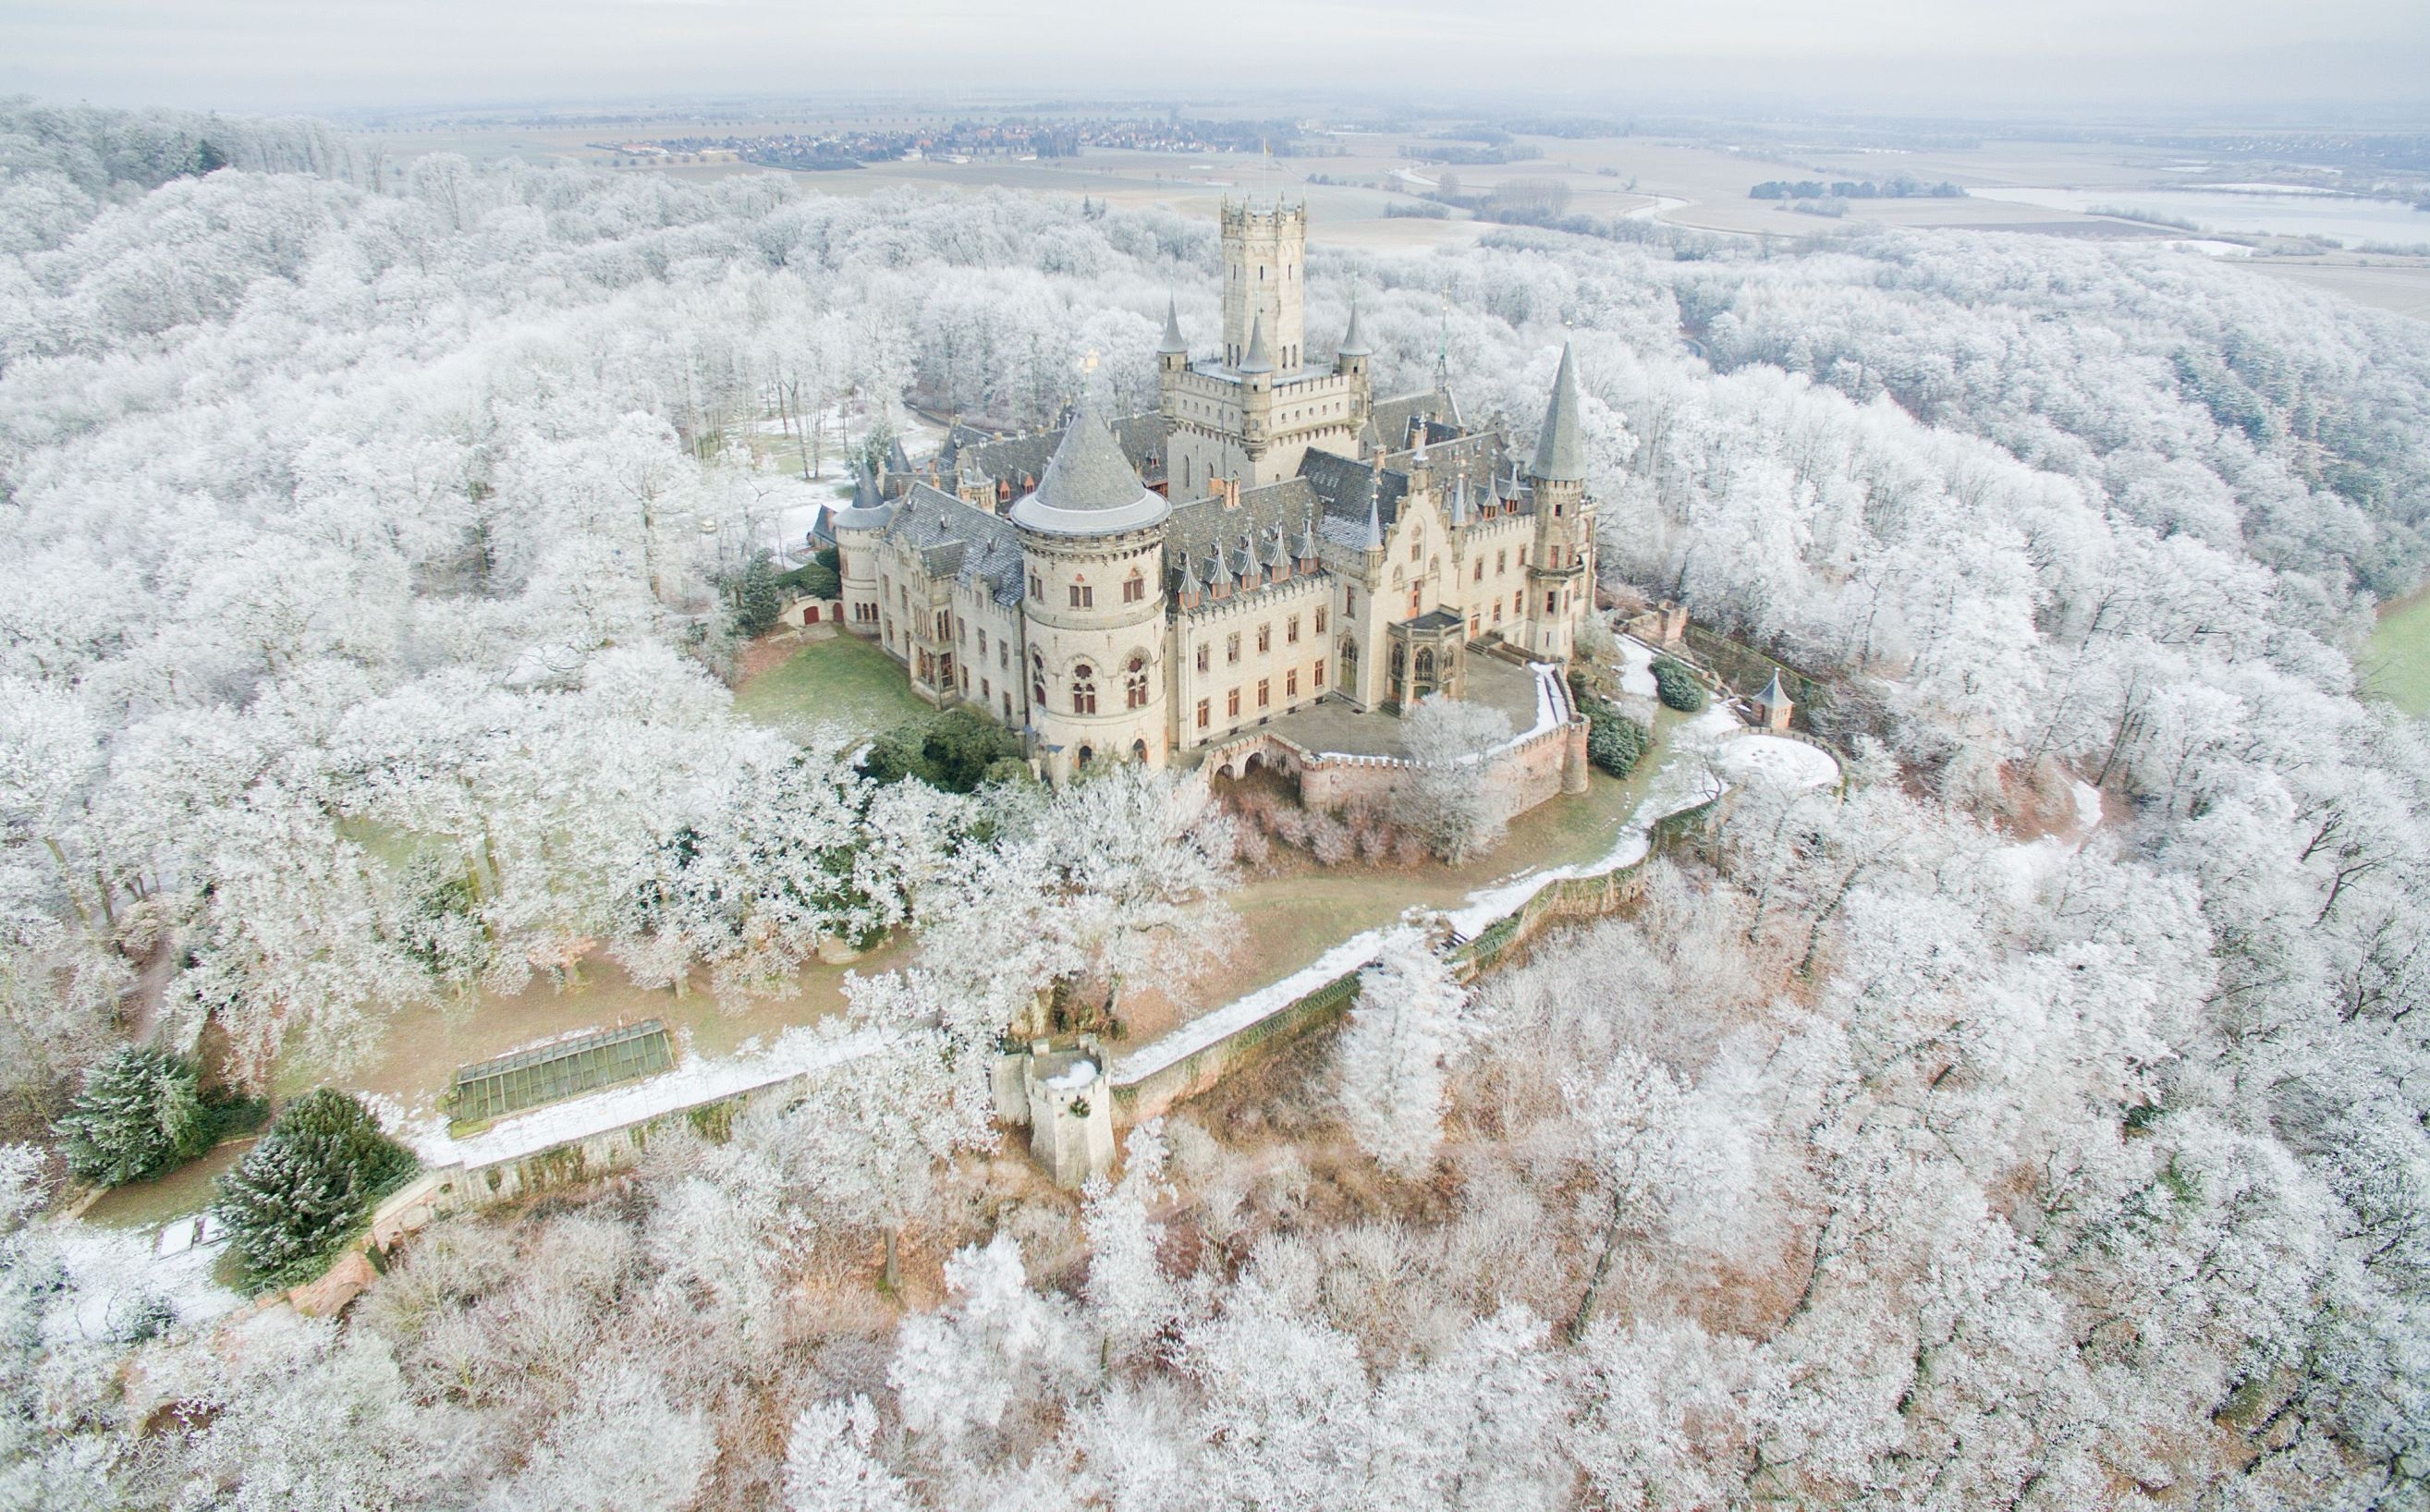 Slide 36 of 100: TOPSHOT - Aerial view taken on January 18, 2017 with a drone shows the Marienburg Castle near Pattensen, northern Germany, standing amidst a snow-covered forest. / AFP / dpa / Julian Stratenschulte / Germany OUT (Photo credit should read JULIAN STRATENSCHULTE/AFP/Getty Images)